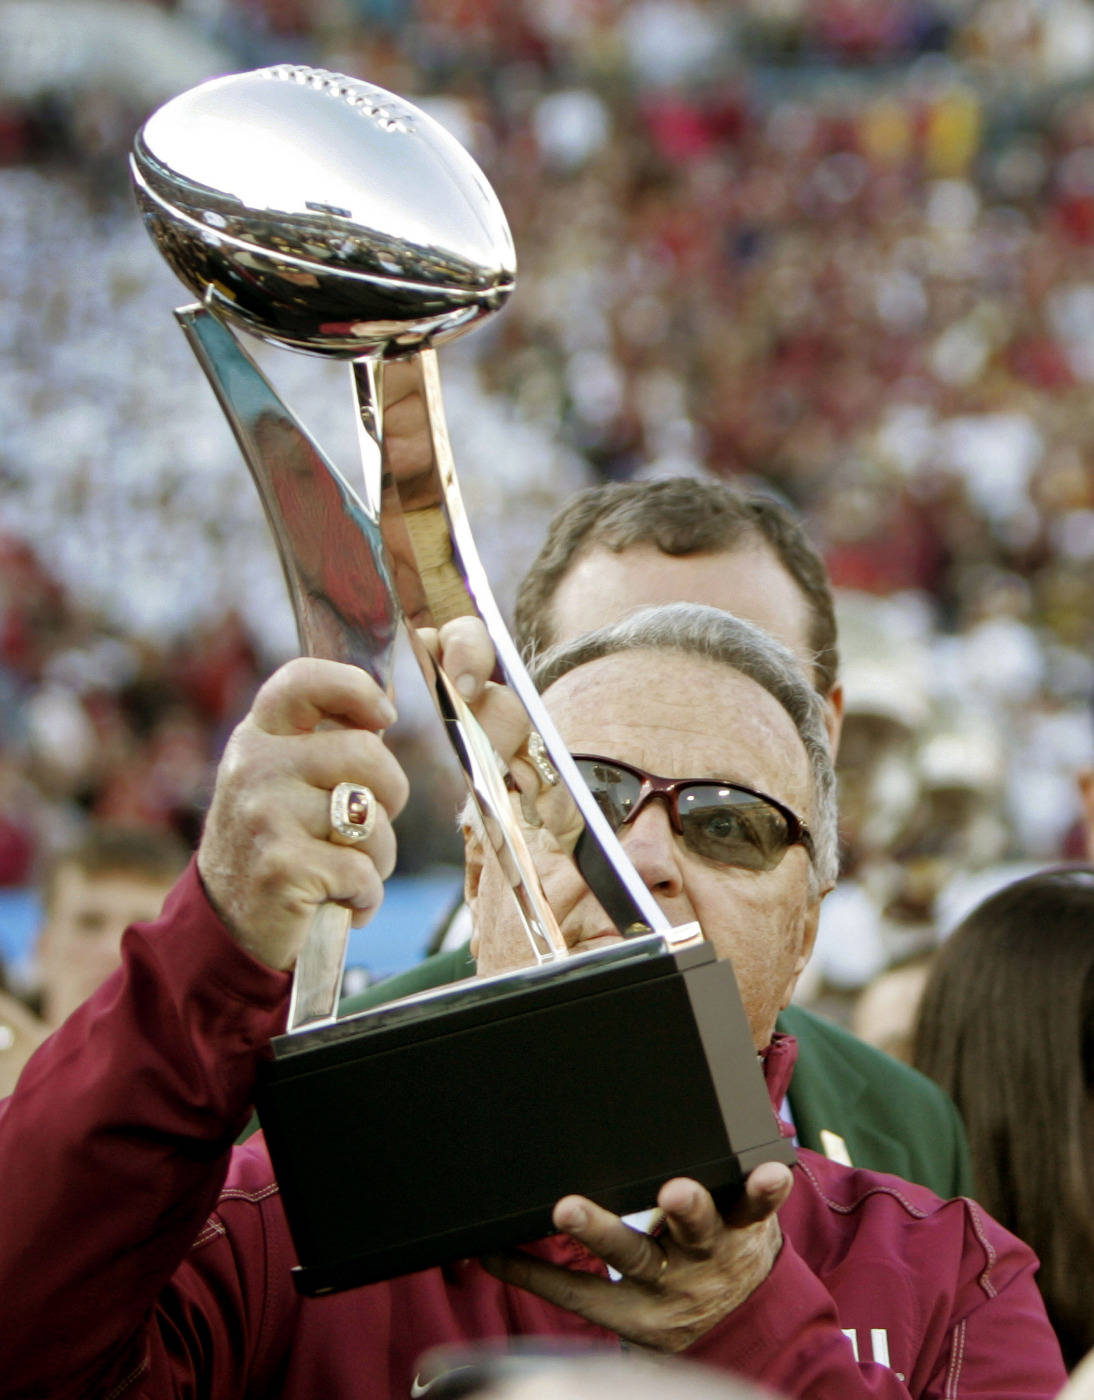 Florida State head coach Bobby Bowden holds up the trophy after their 33-21 win over West Virginia in the Gator Bowl NCAA college football game, on Friday, Jan. 1, 2010, in Jacksonville, Fla.(AP Photo/Phil Coale)